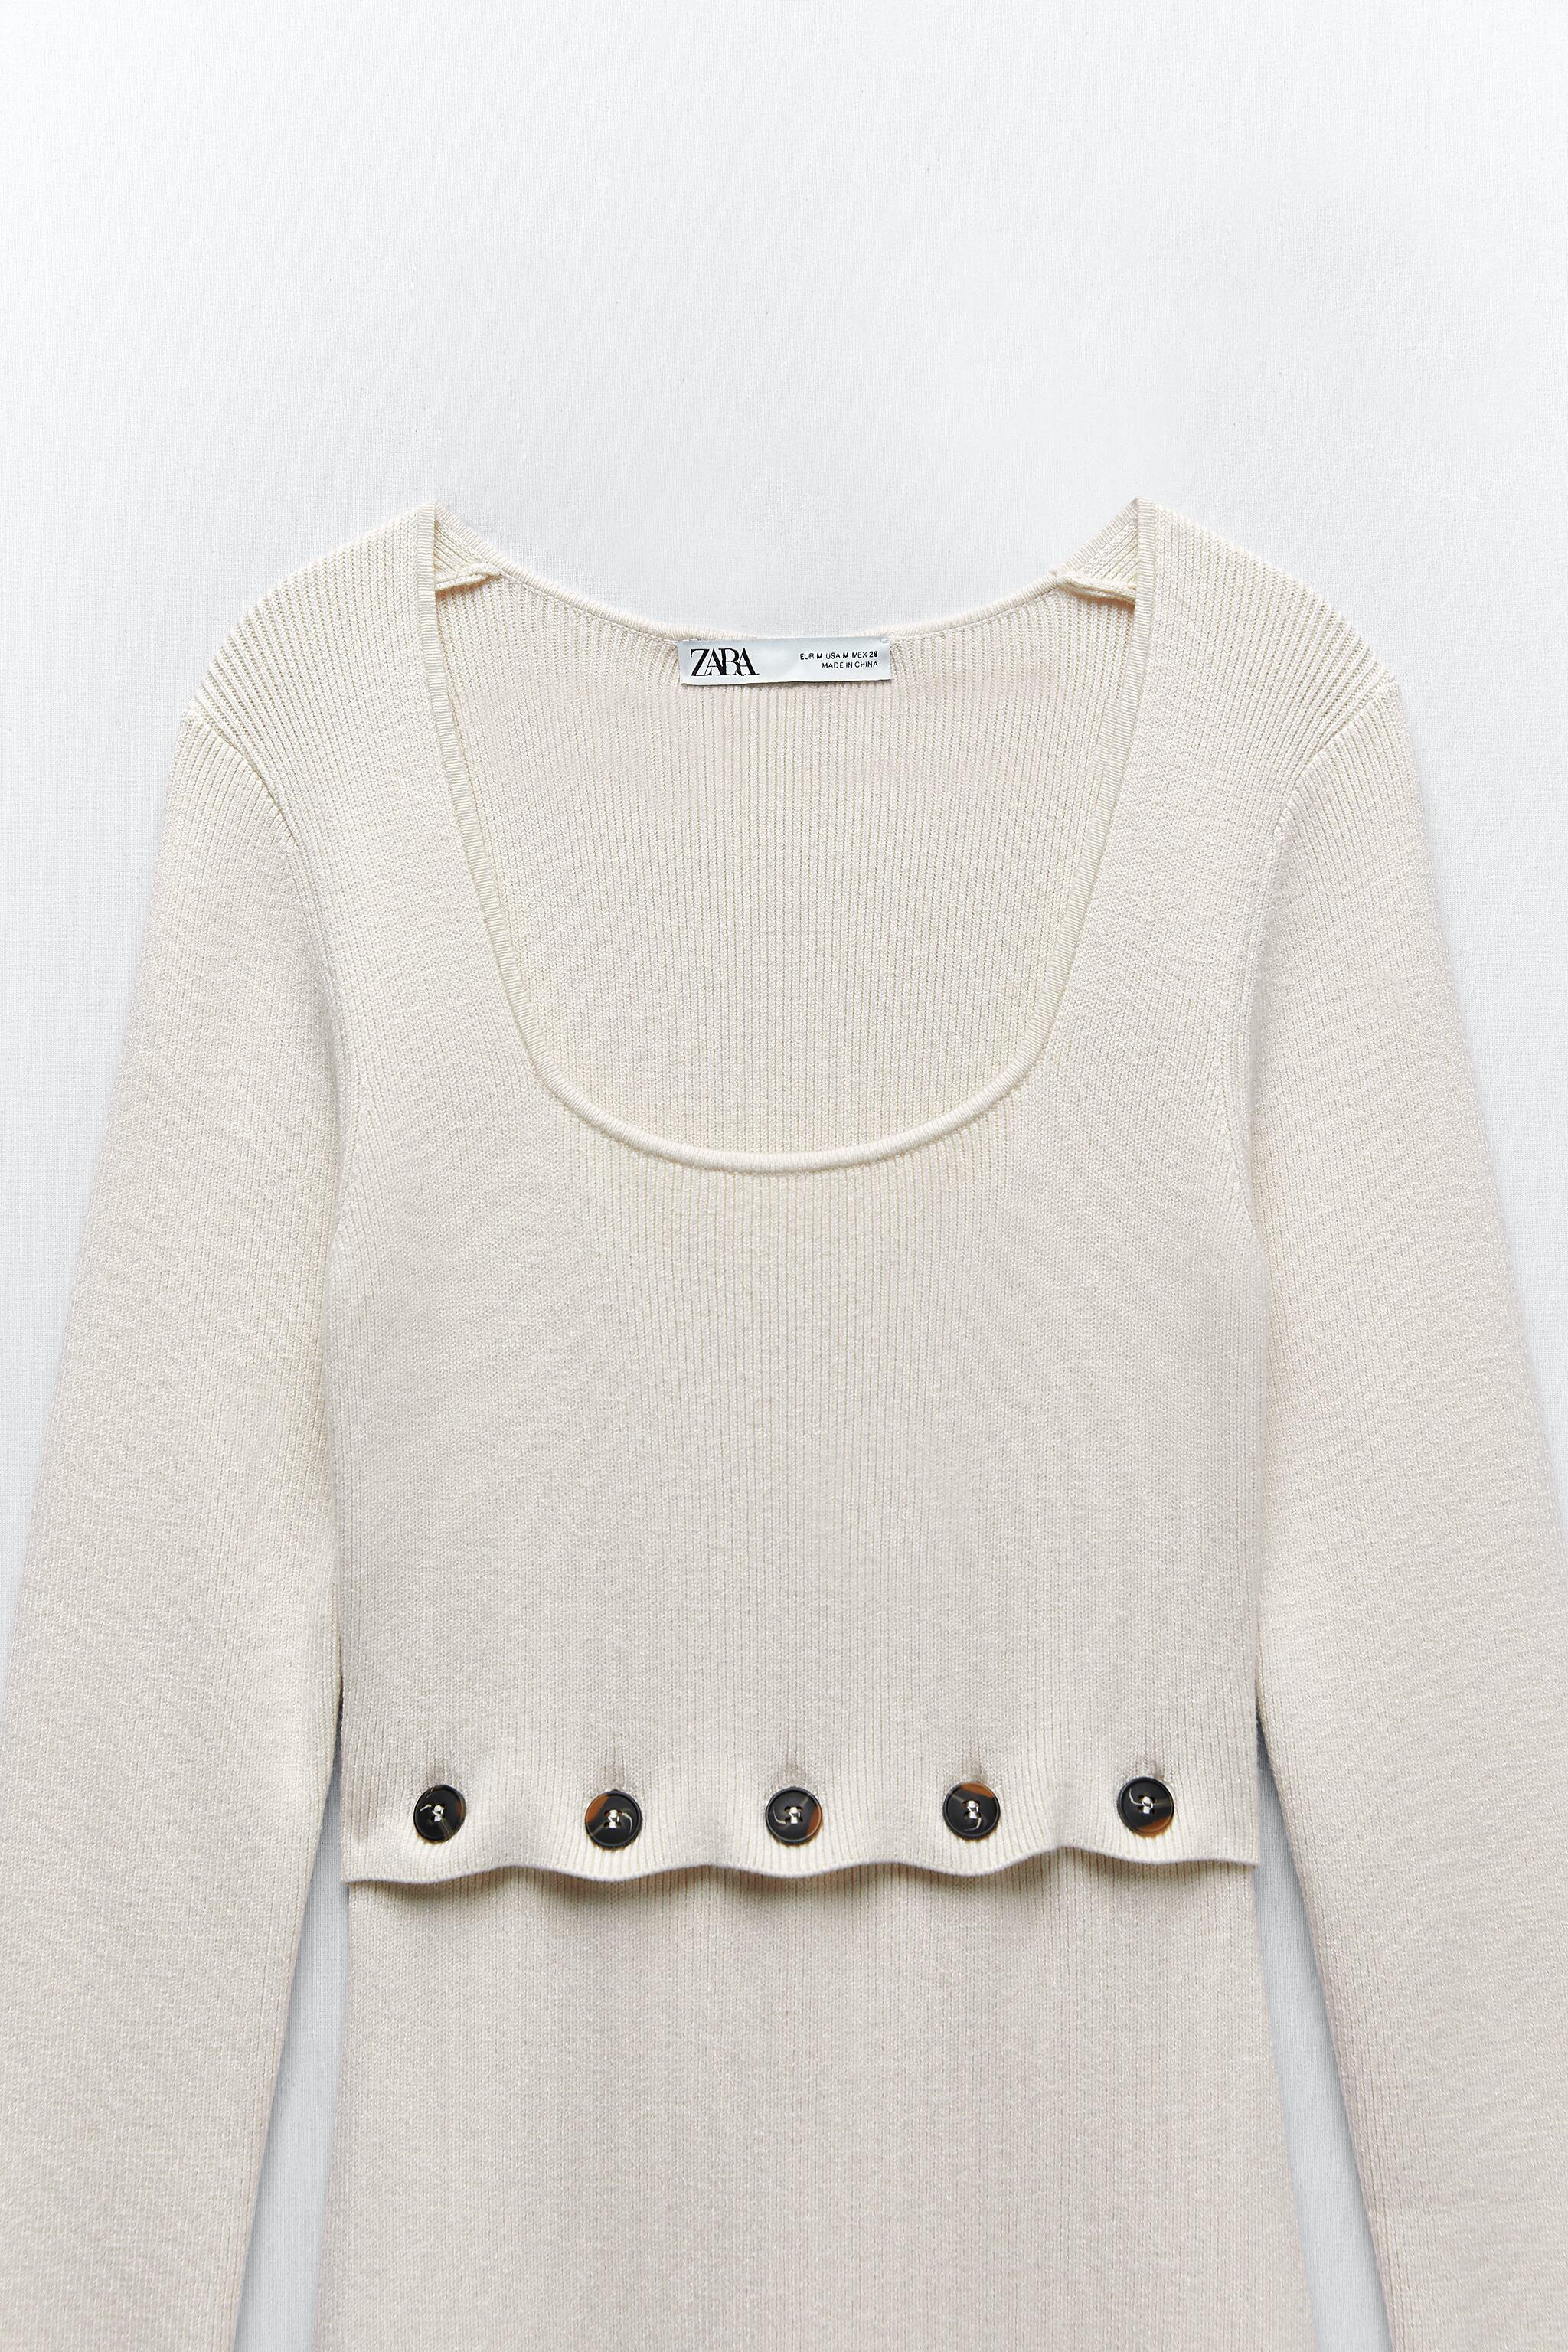 KNIT DRESS WITH BUTTONS 6